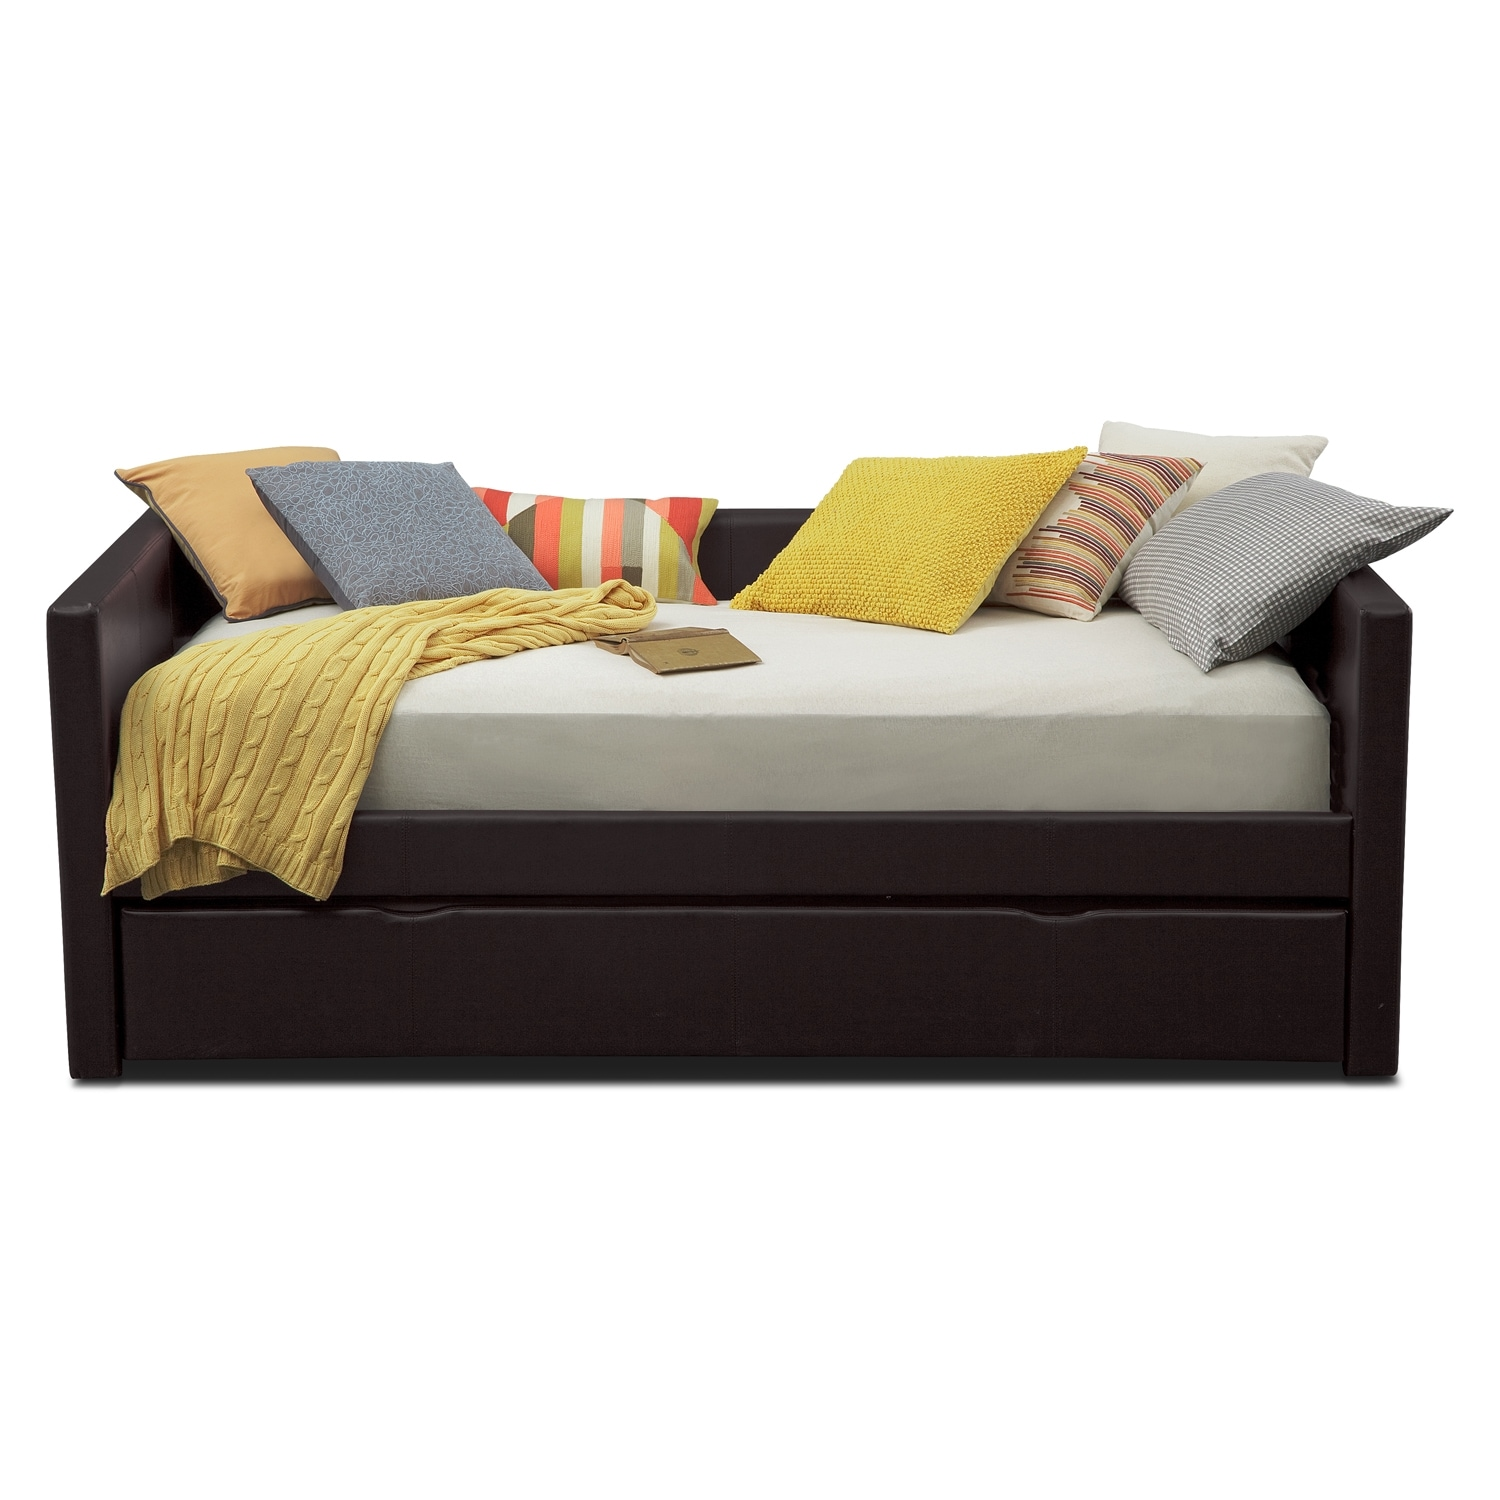 Welcome to ROC City Furniture. With a huge selection of the best brand names, ROC City Furniture is the number one choice for quality furniture at affordable prices in Rochester, NY.